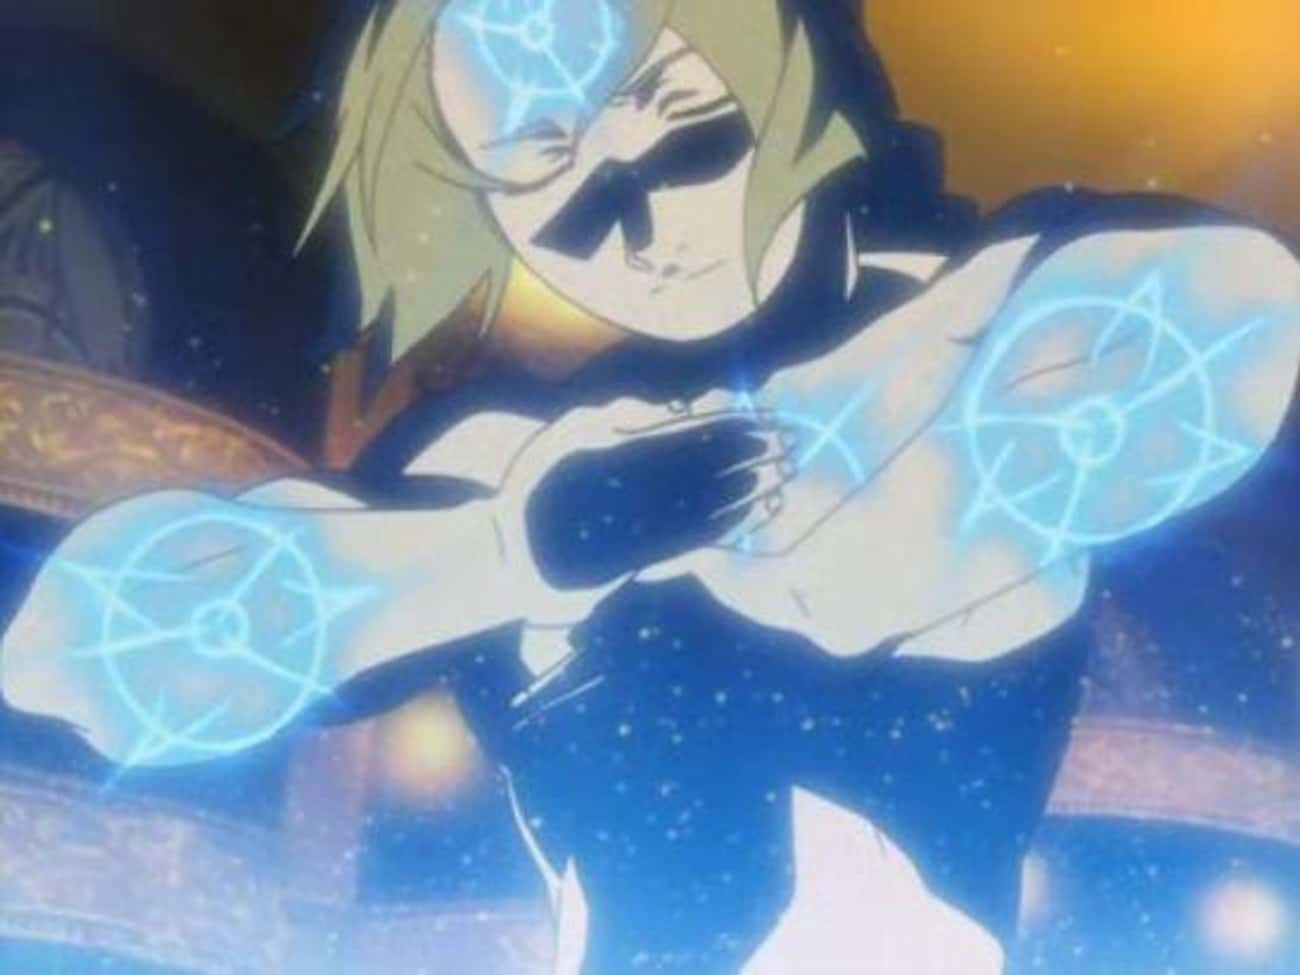 Fullmetal Alchemist is listed (or ranked) 4 on the list 15 Anime With Bittersweet Endings